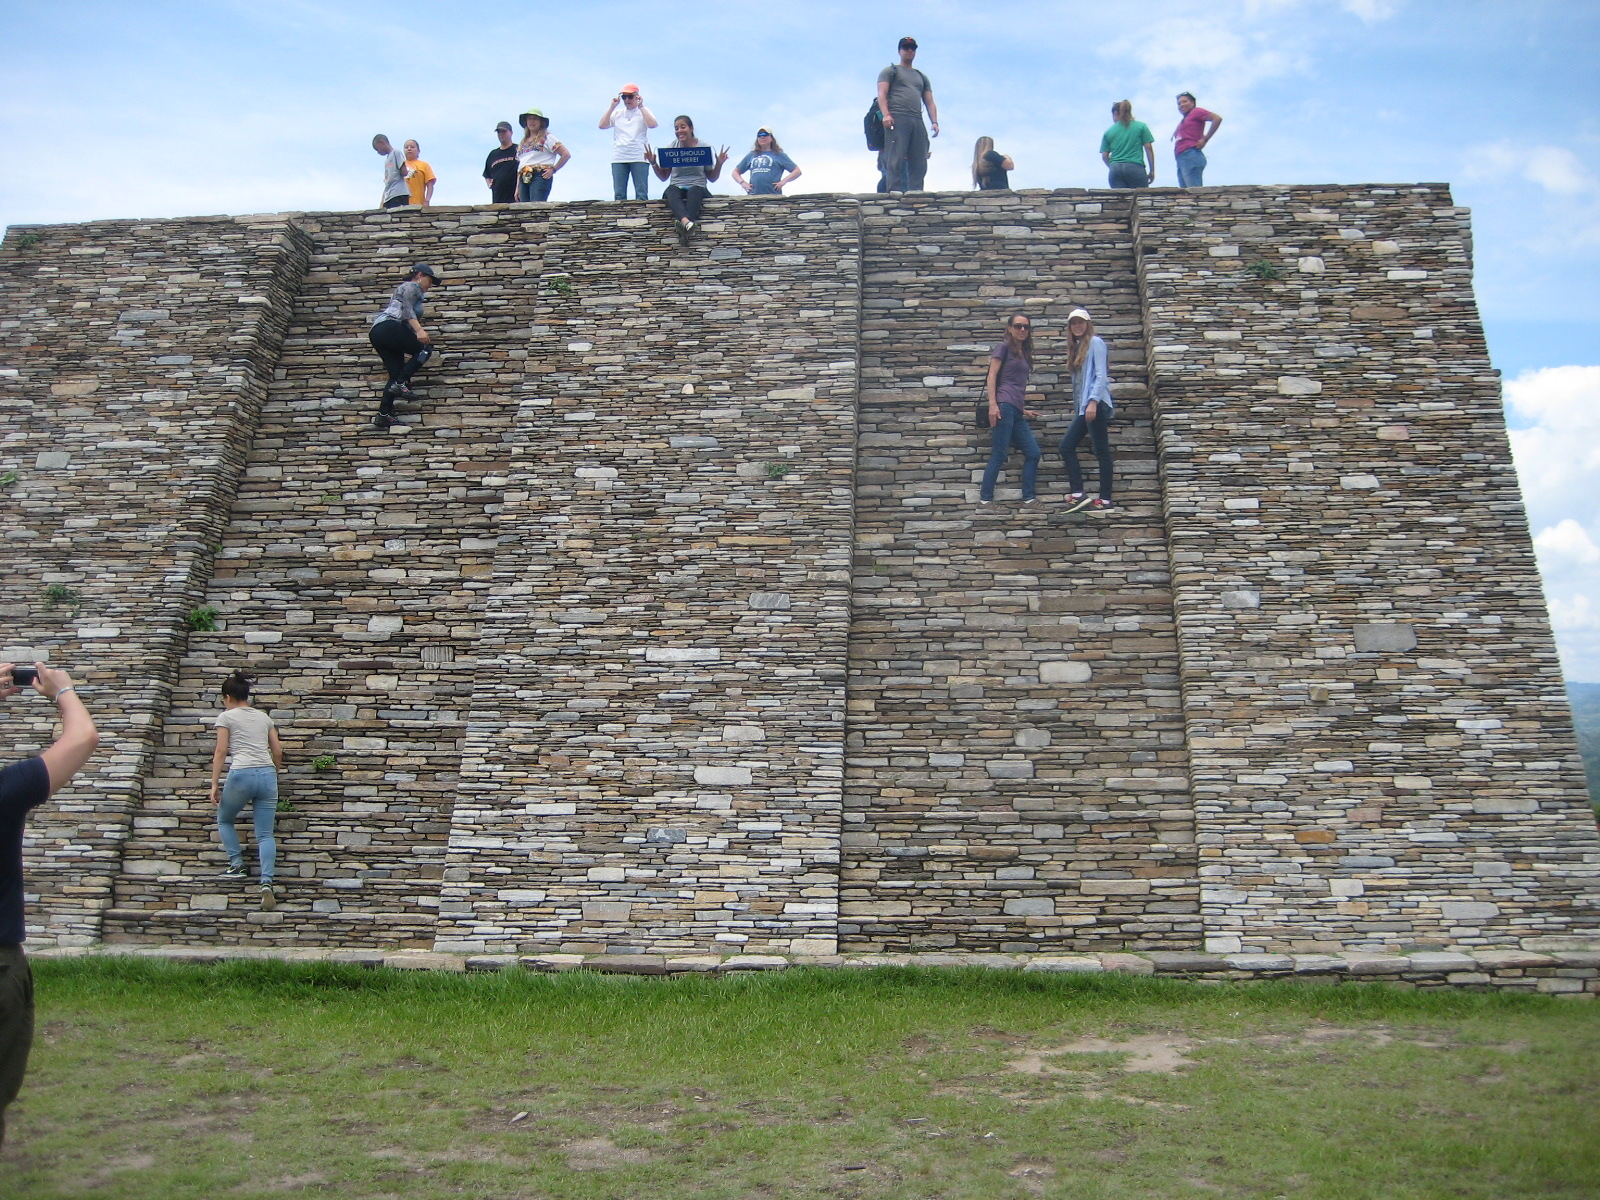 Des & I on steps of Mayan Ruins.JPG